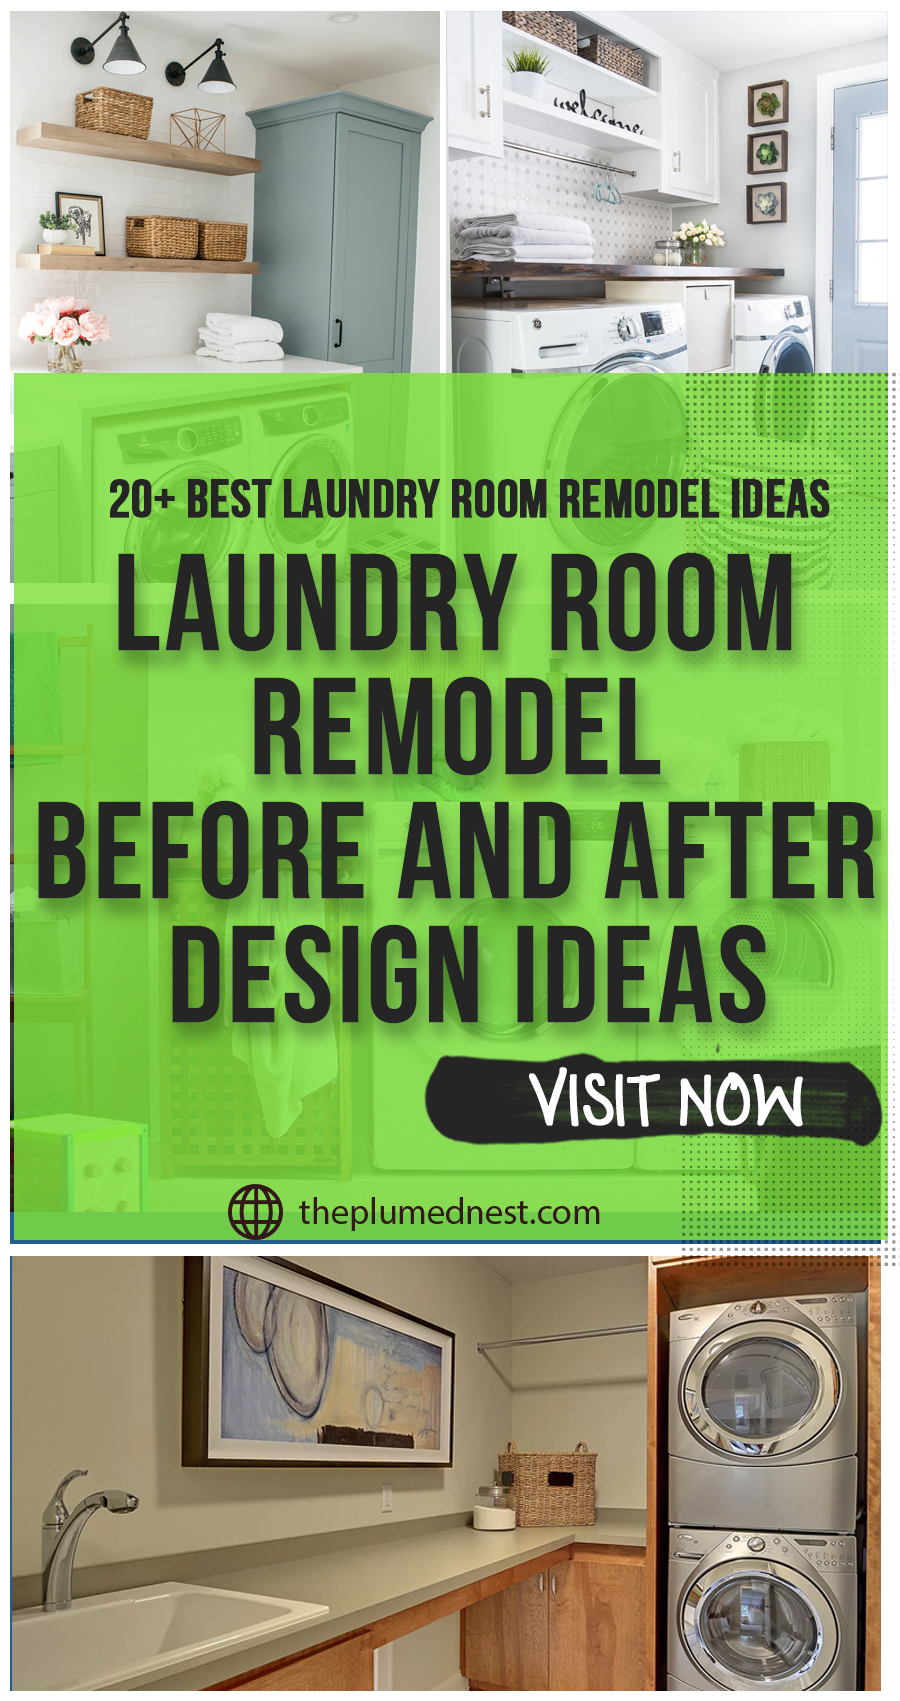 Laundry Room Remodel( 20+ Magnificent Ideas, Remodel Tips & Things to Consider)